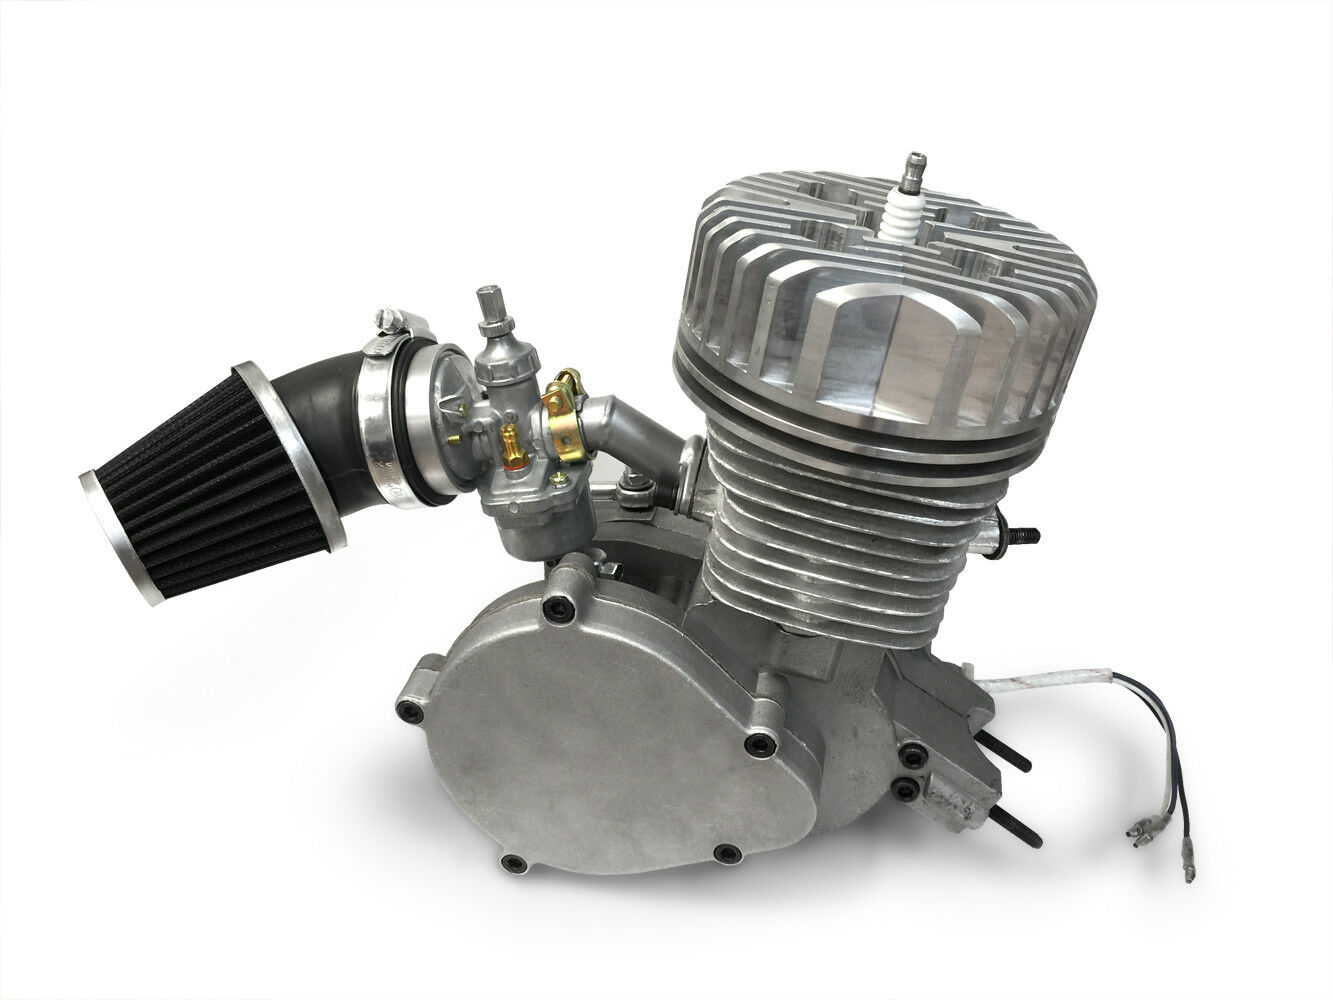 GT6 Pro Racing 66cc 80cc Bicycle Engine Only For Gas Motorized Bicycle